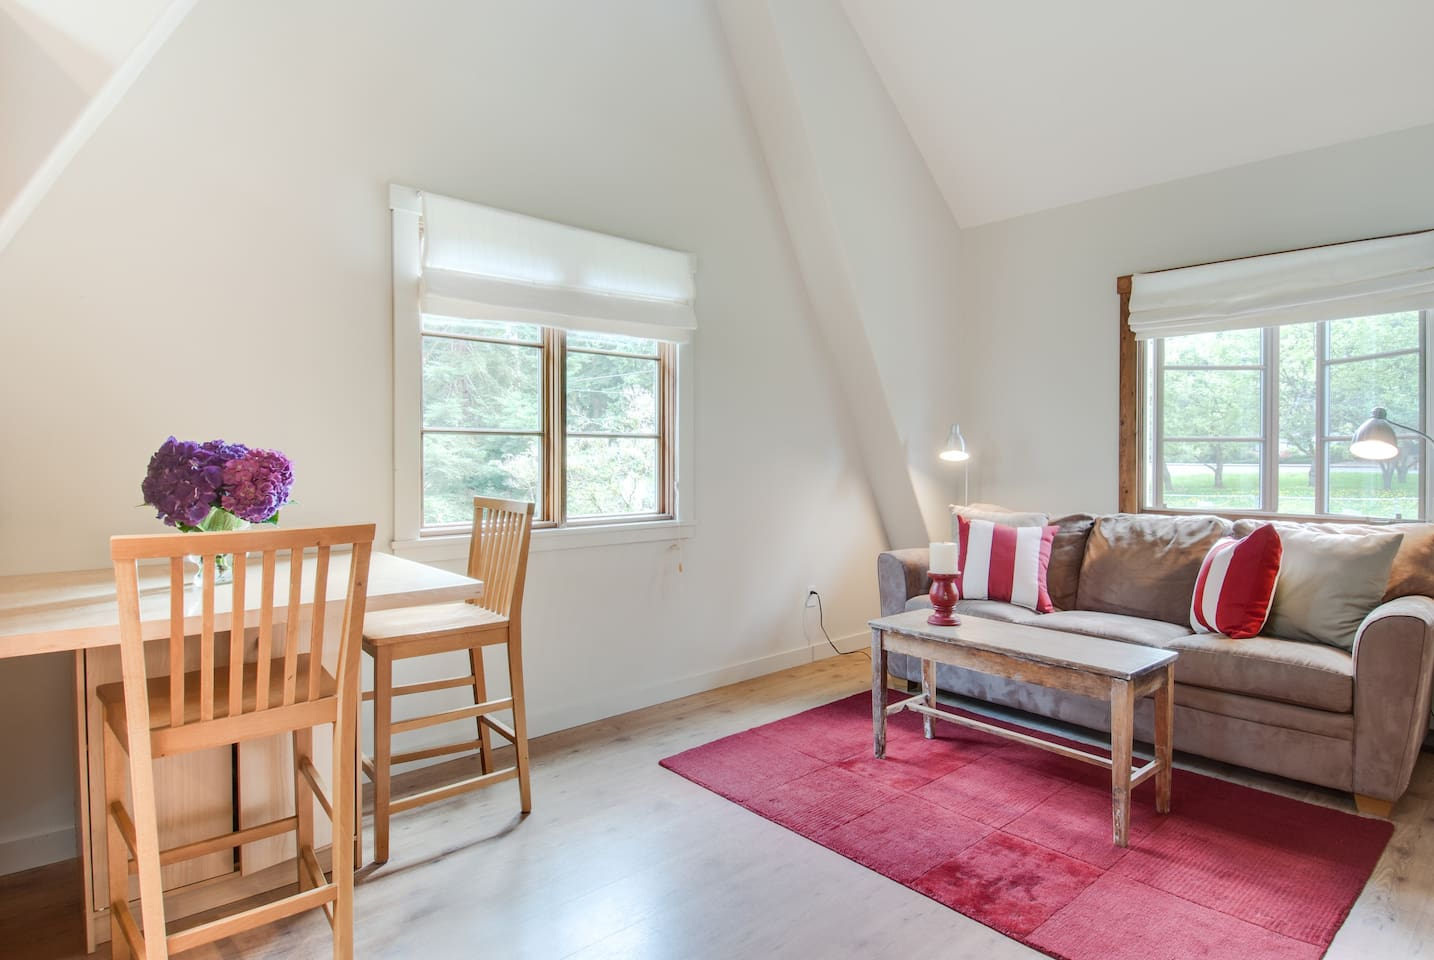 Light and airy Mother-in-law apartment. Vaulted ceilings & gourmet kitchen